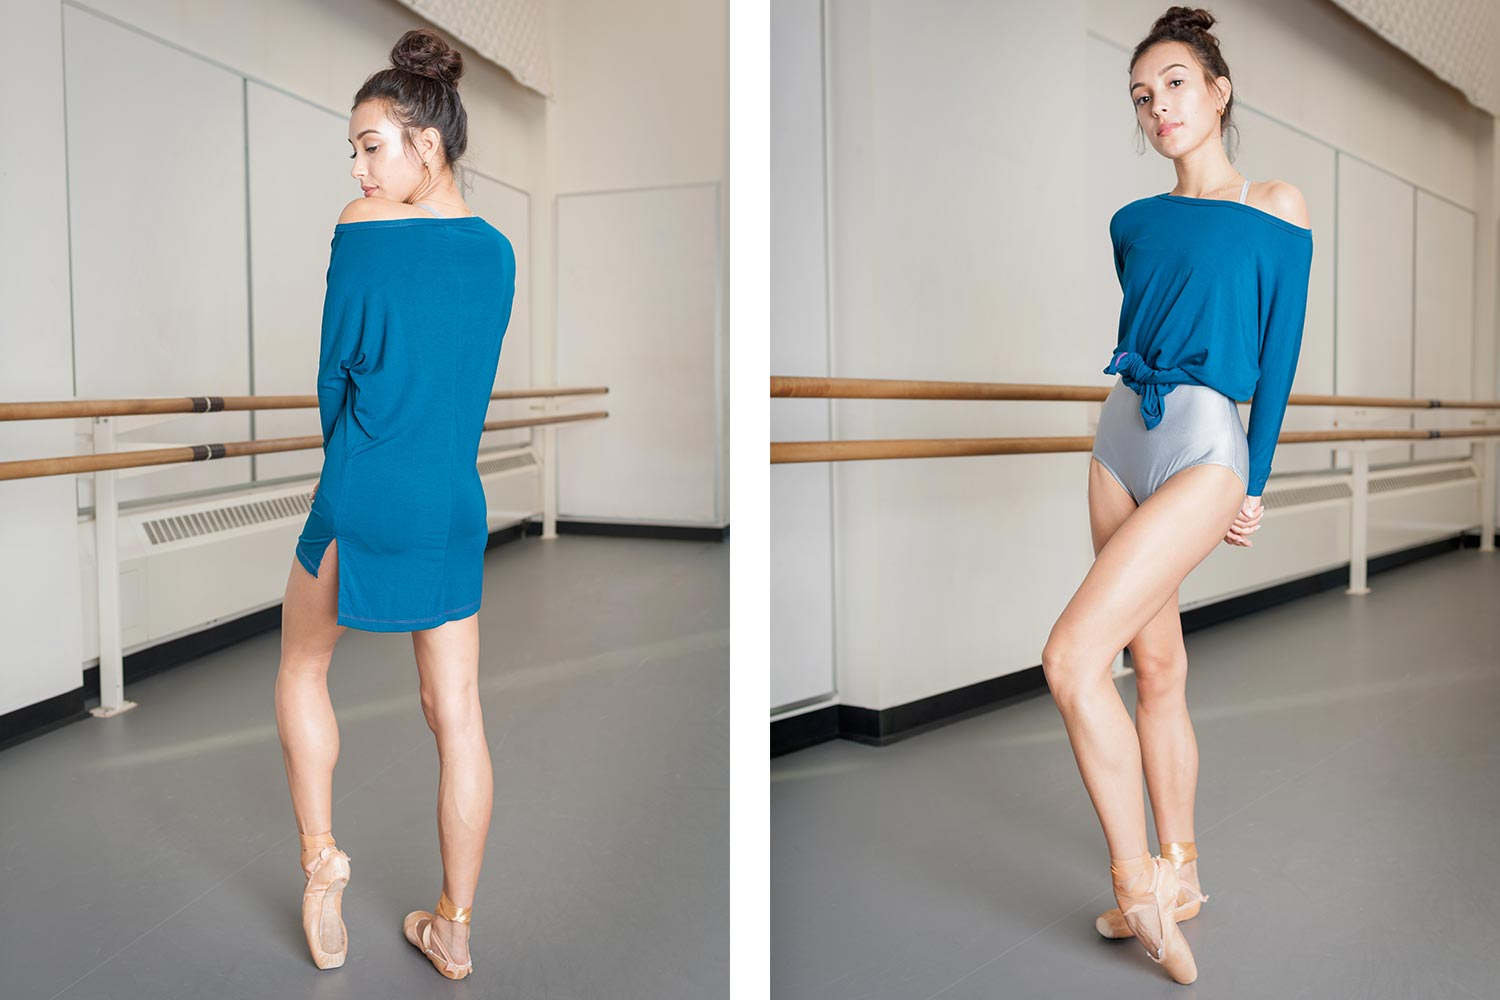 dancer on pointe wearing three quarter length sleeve workout and warmup shirt and wearing it tied up from waist